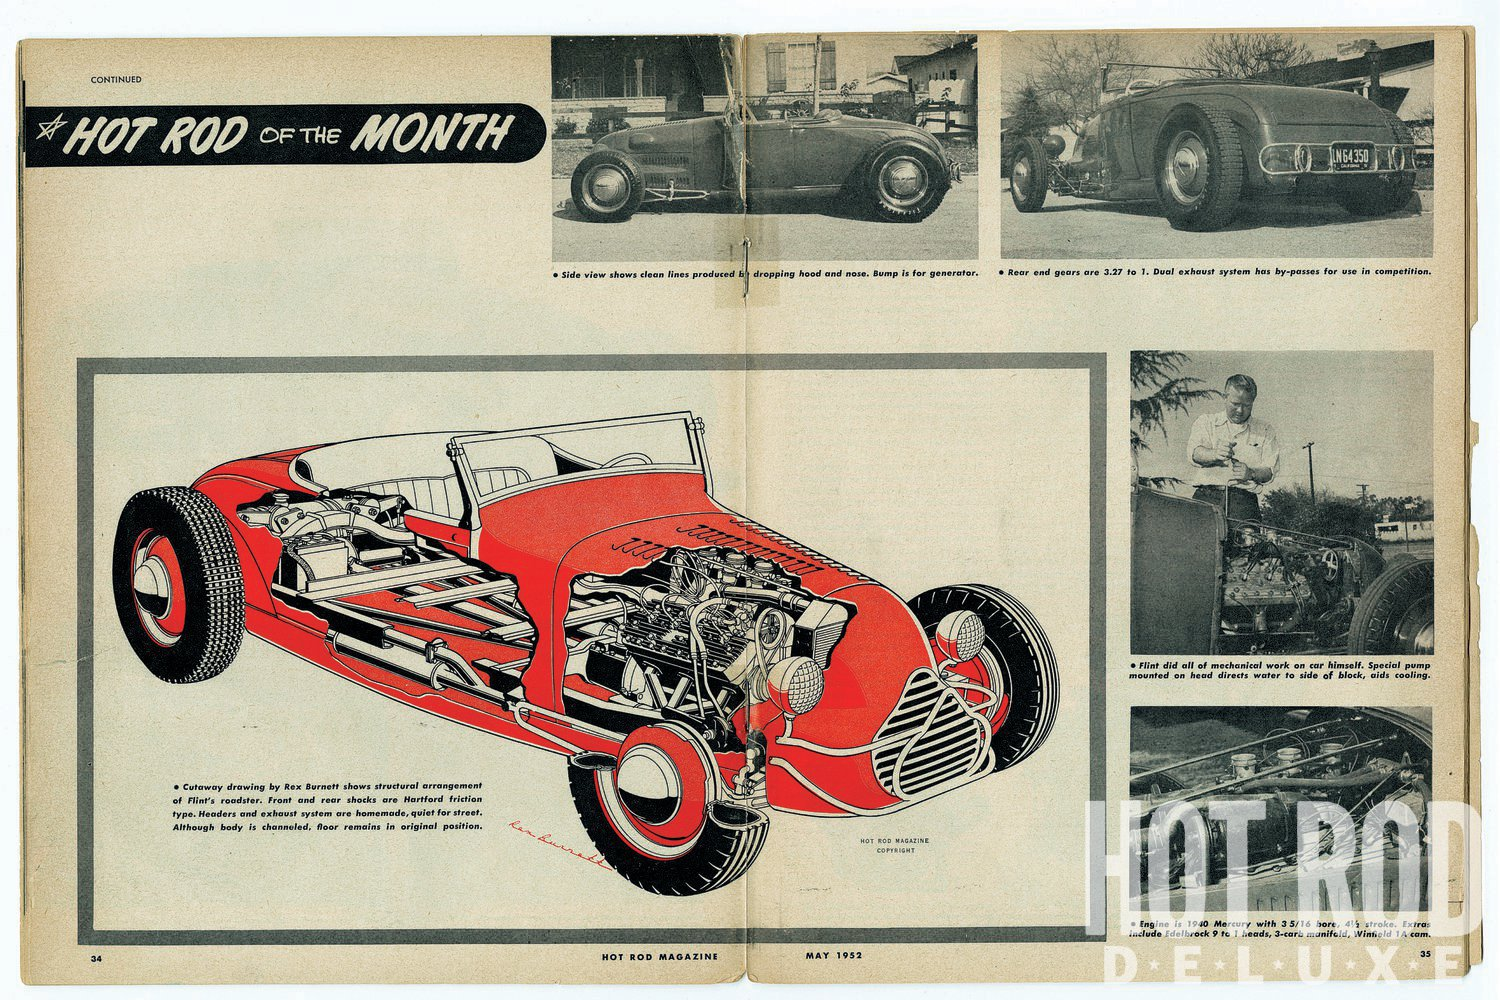 """Cutaway As """"Hot Rod of the Month,"""" Flint's roadster was treated to a Rex Burnett cutaway illustration. The caption points out, """"…front and rear shocks are Hartford friction type. Headers and exhaust system are homemade, quiet for the street. Although body is channeled, floor remains in original position."""""""